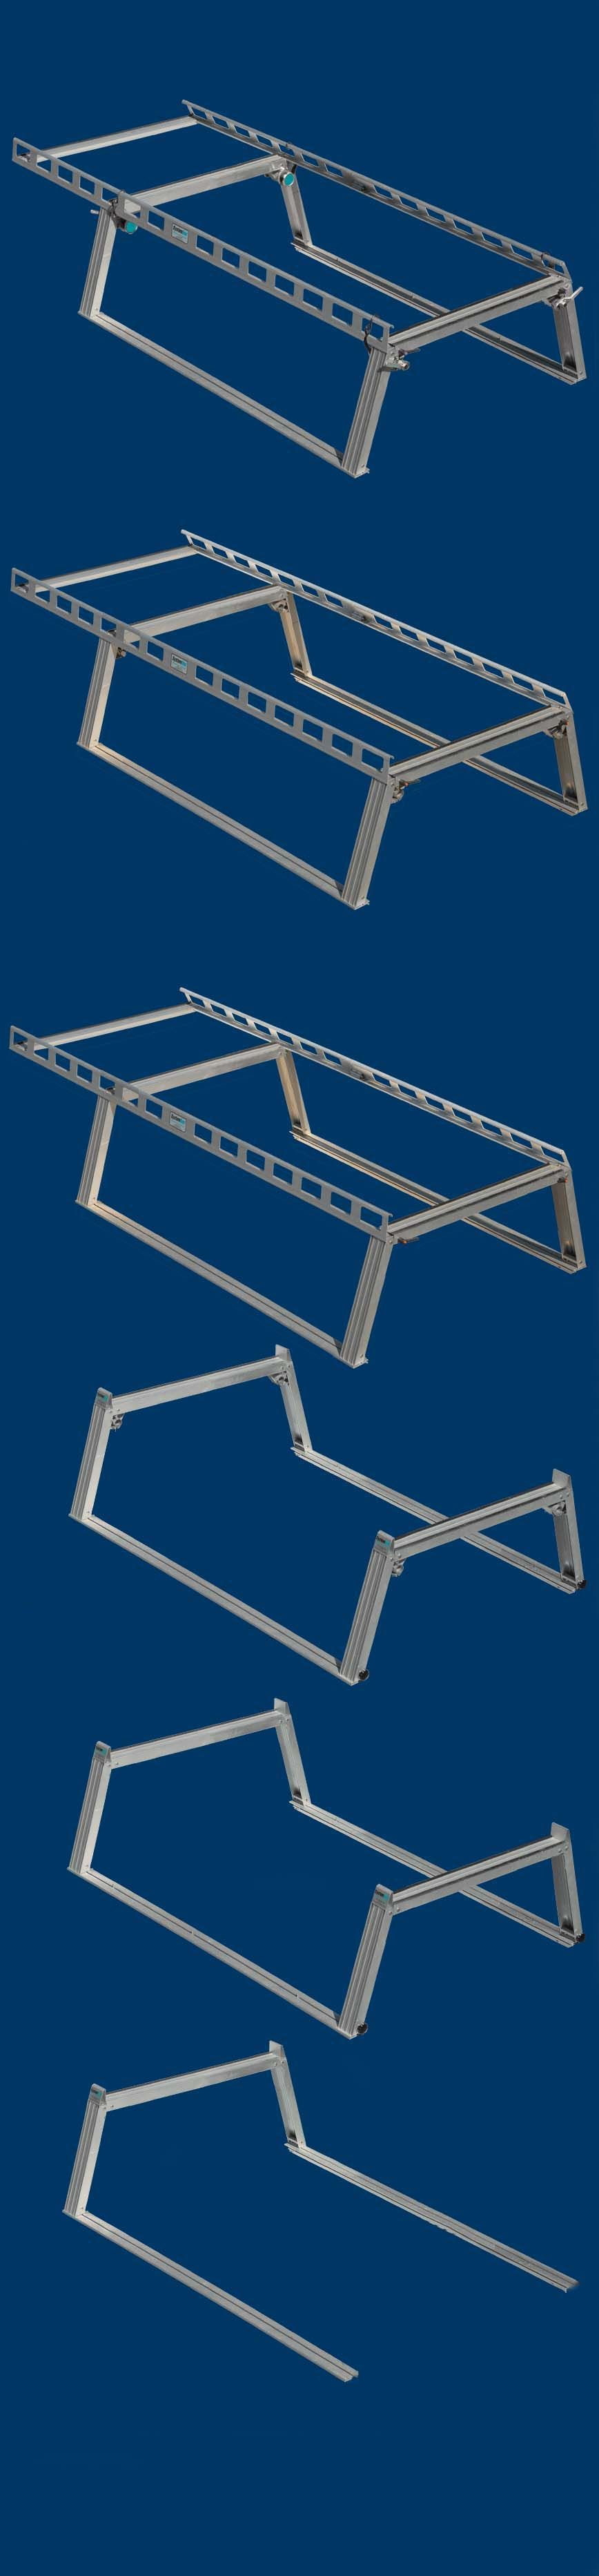 Pin By Alvin On Bars In 2020 With Images Truck Tools Ladder